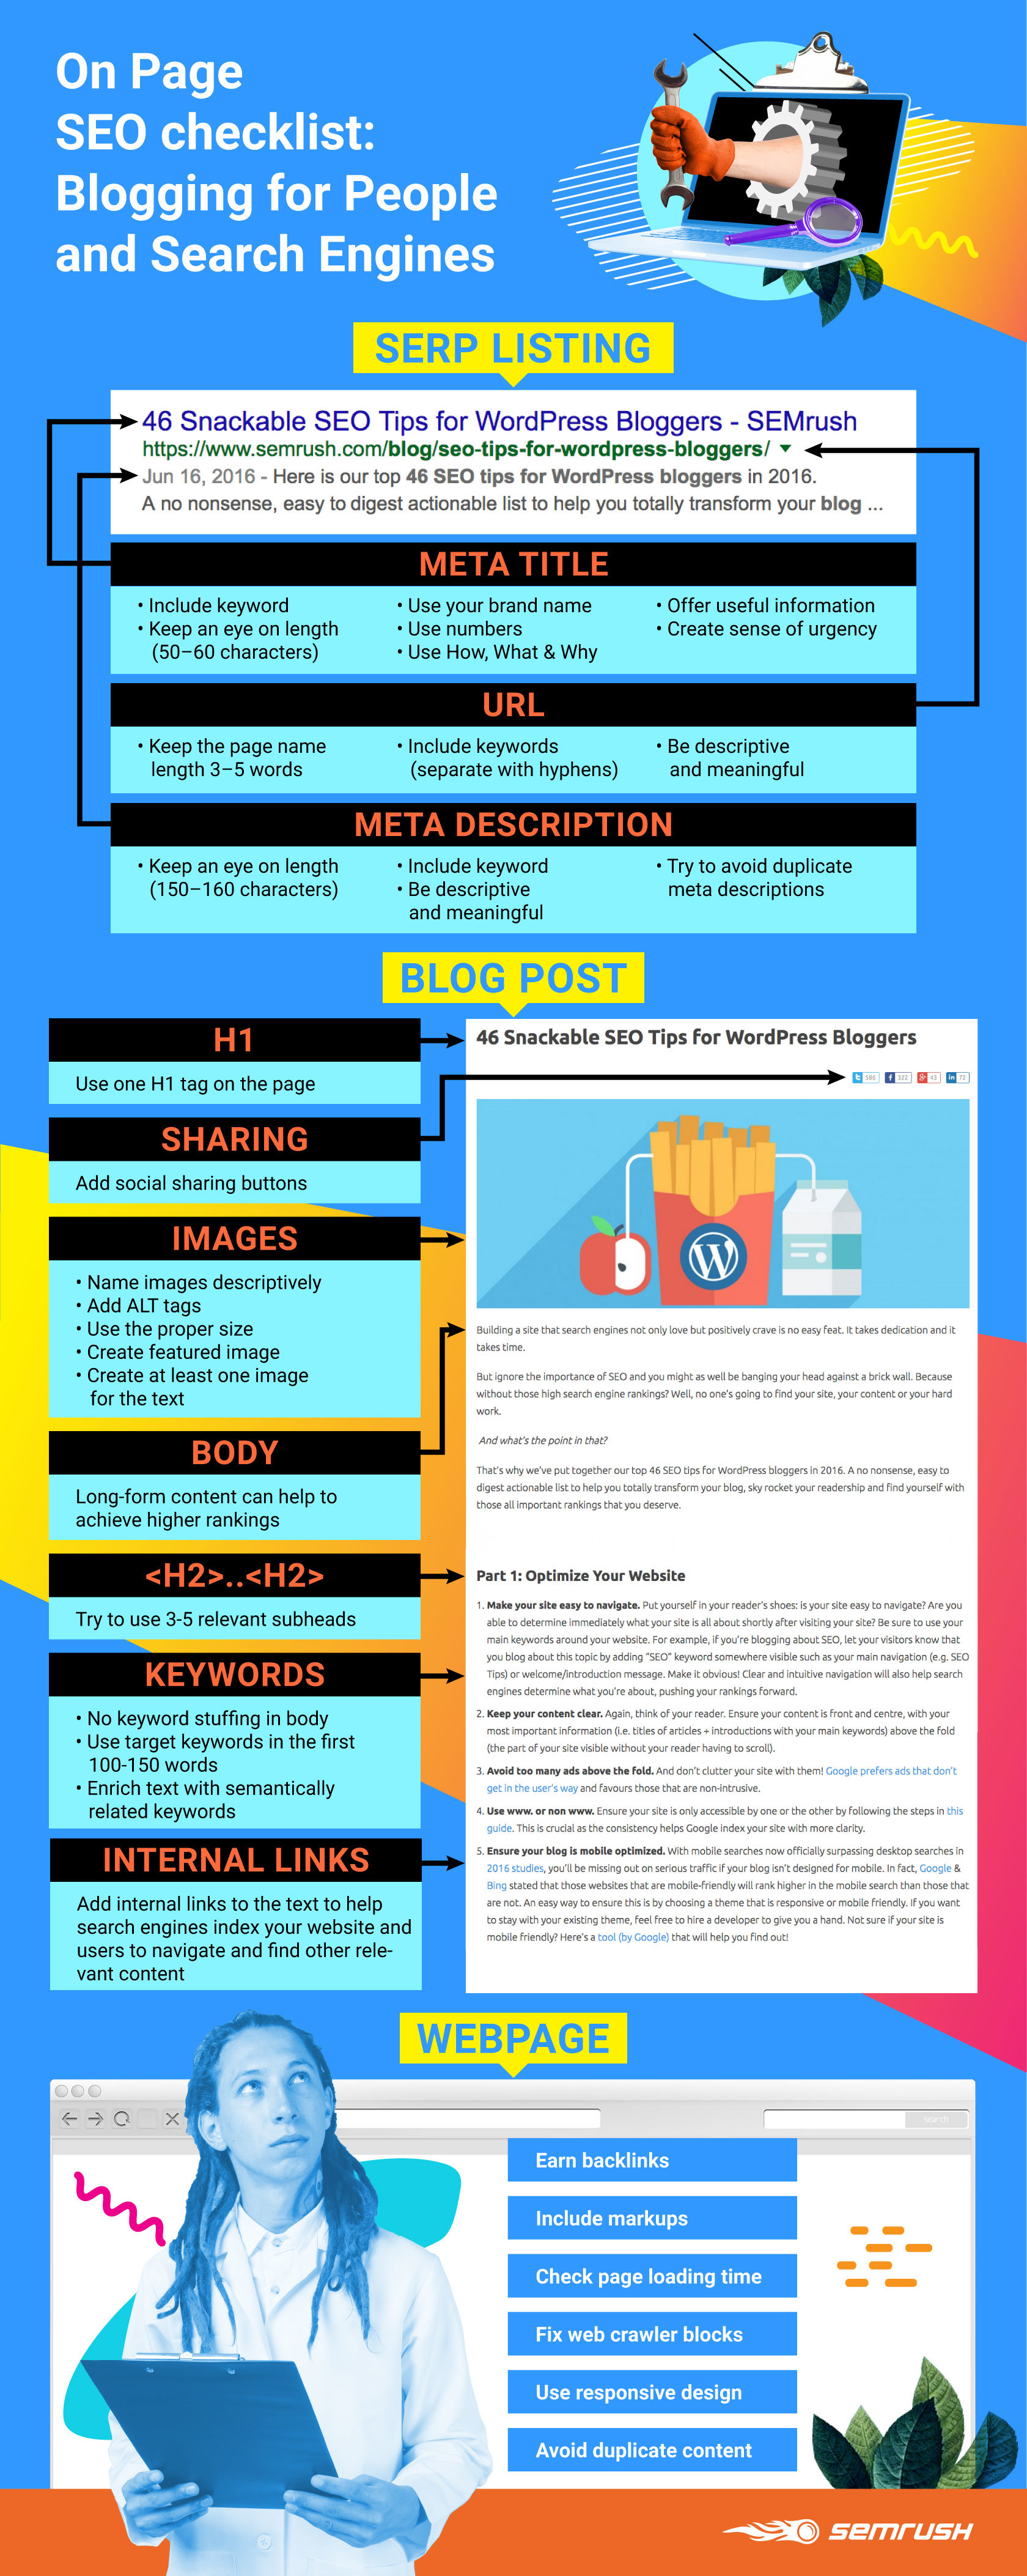 On-Page SEO Checklist: Blogging for People and Search Engines. Image 0